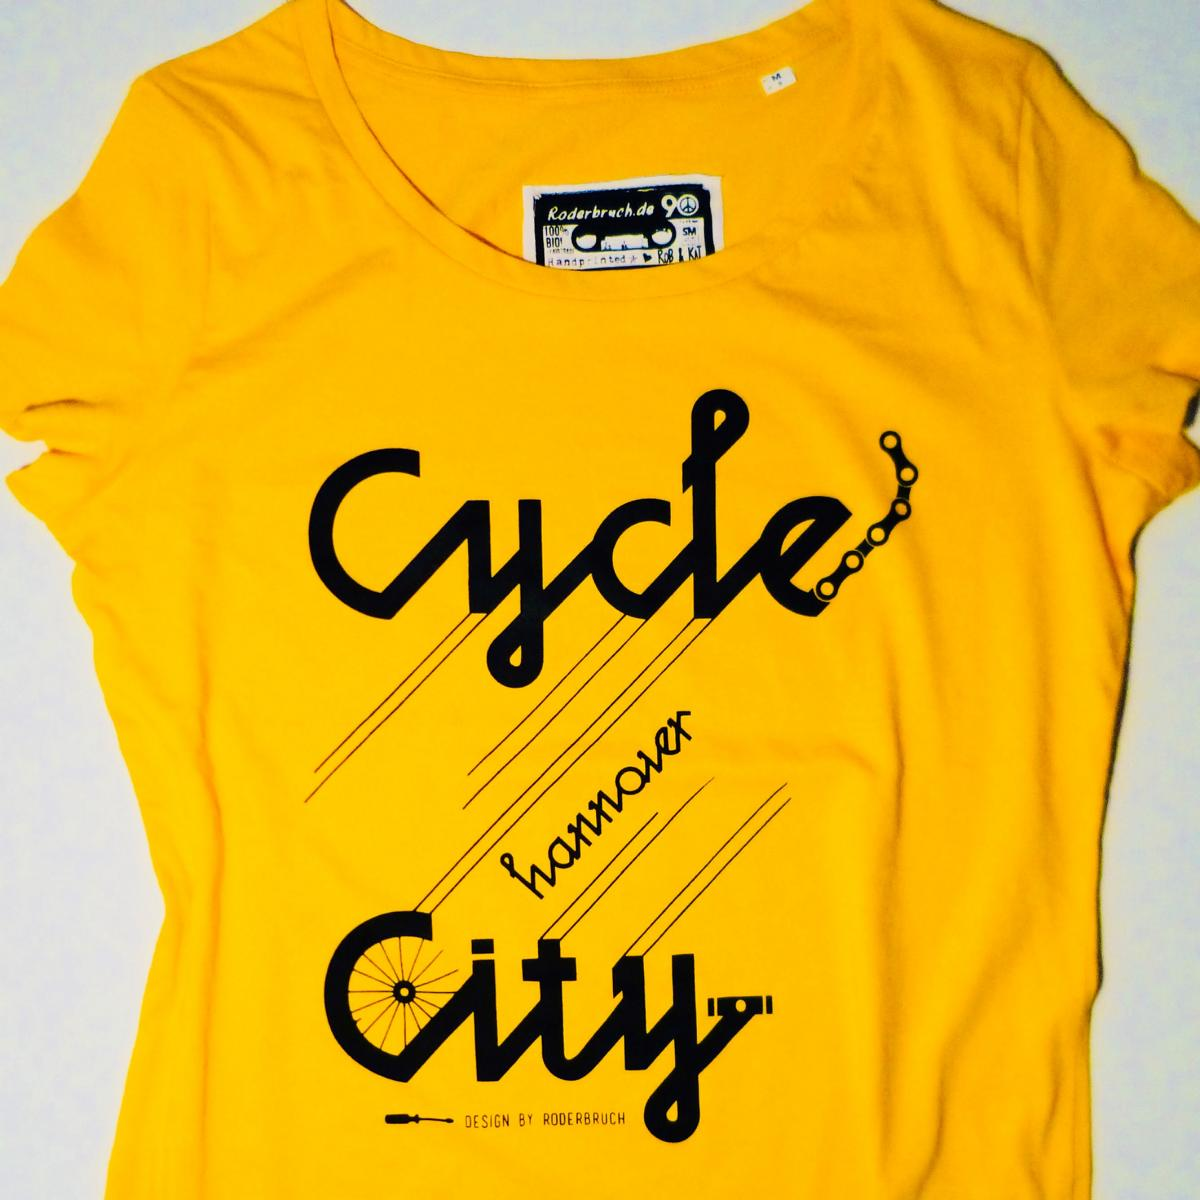 Style Hannover Roderbruch design cycle city hannover 1 - Roderbruch - Mode mit Hannover Colorit